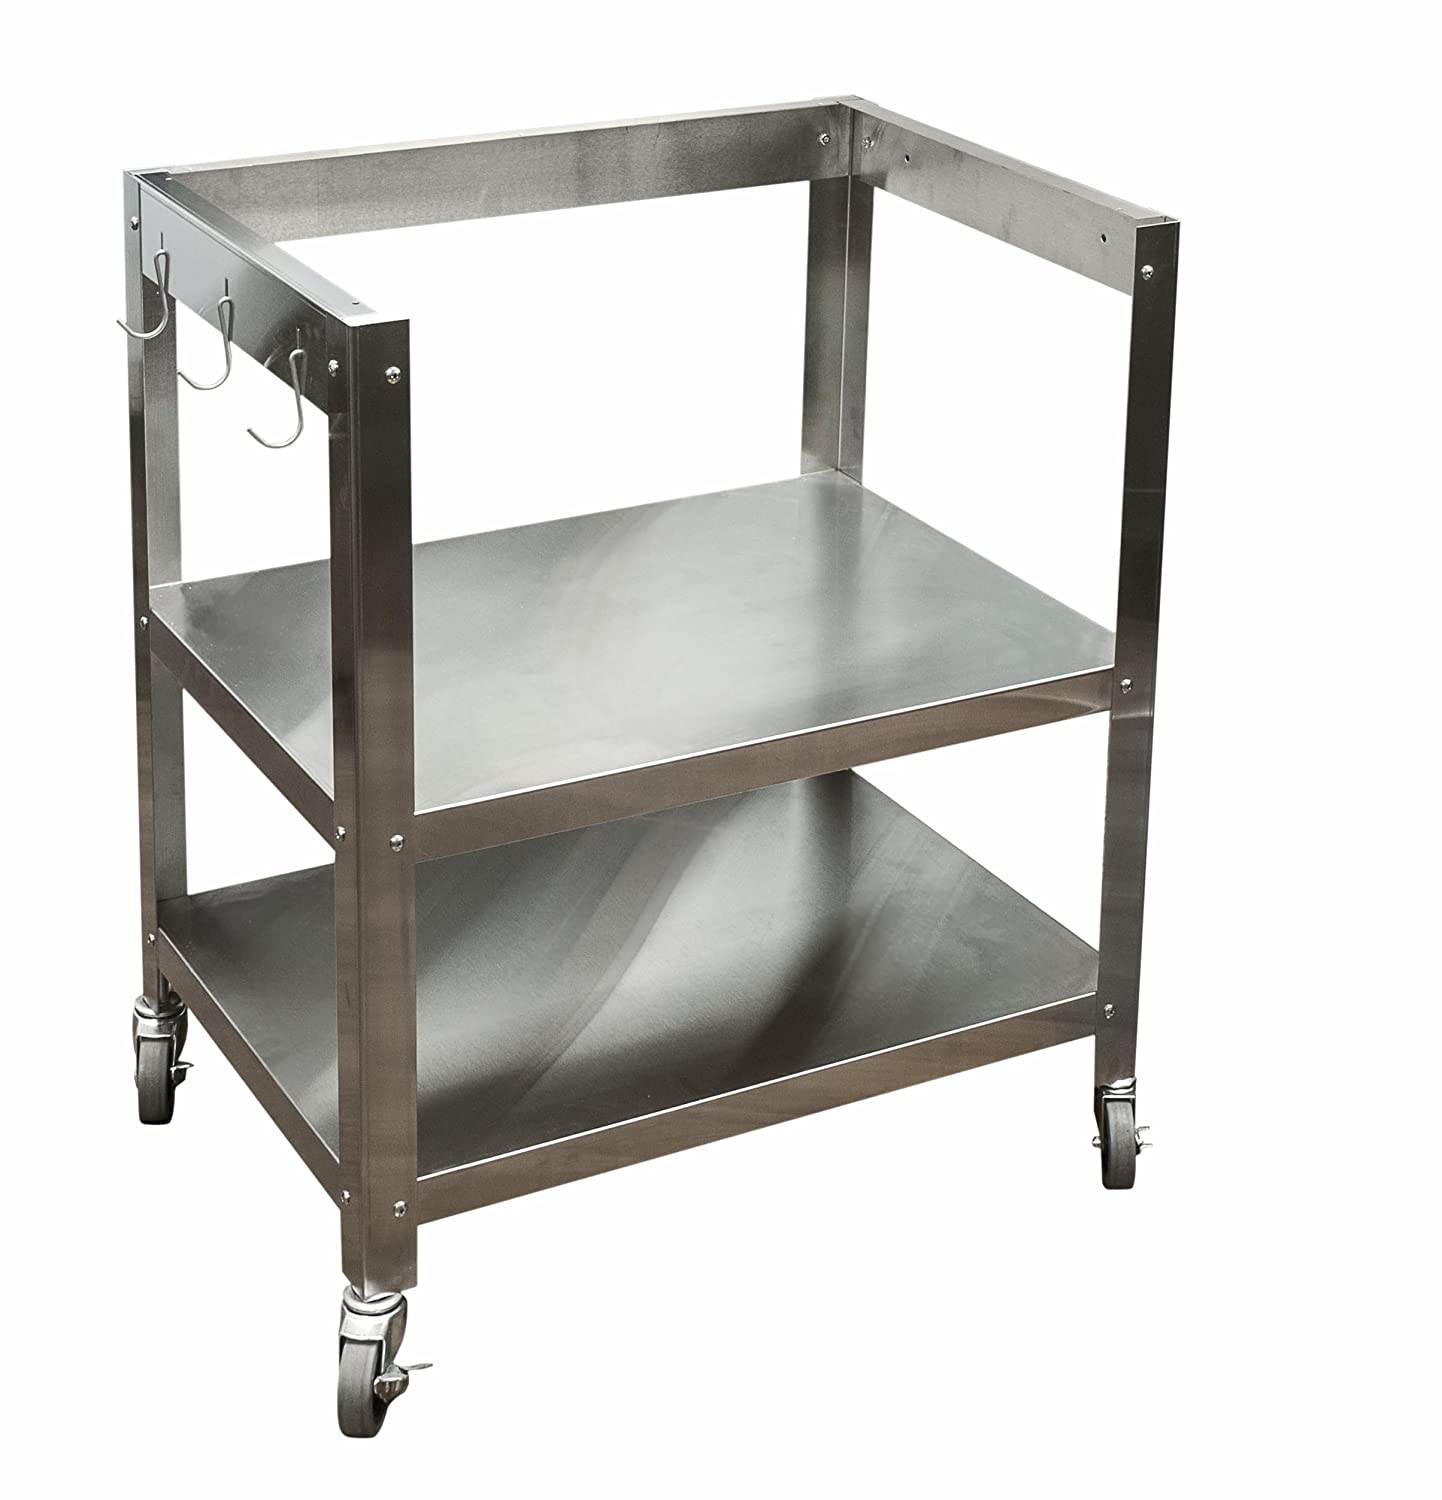 Kitchen cart metal - Amazon Com Danver Stainless Steel Kitchen Cart Without Top 30 Inch Kitchen Dining